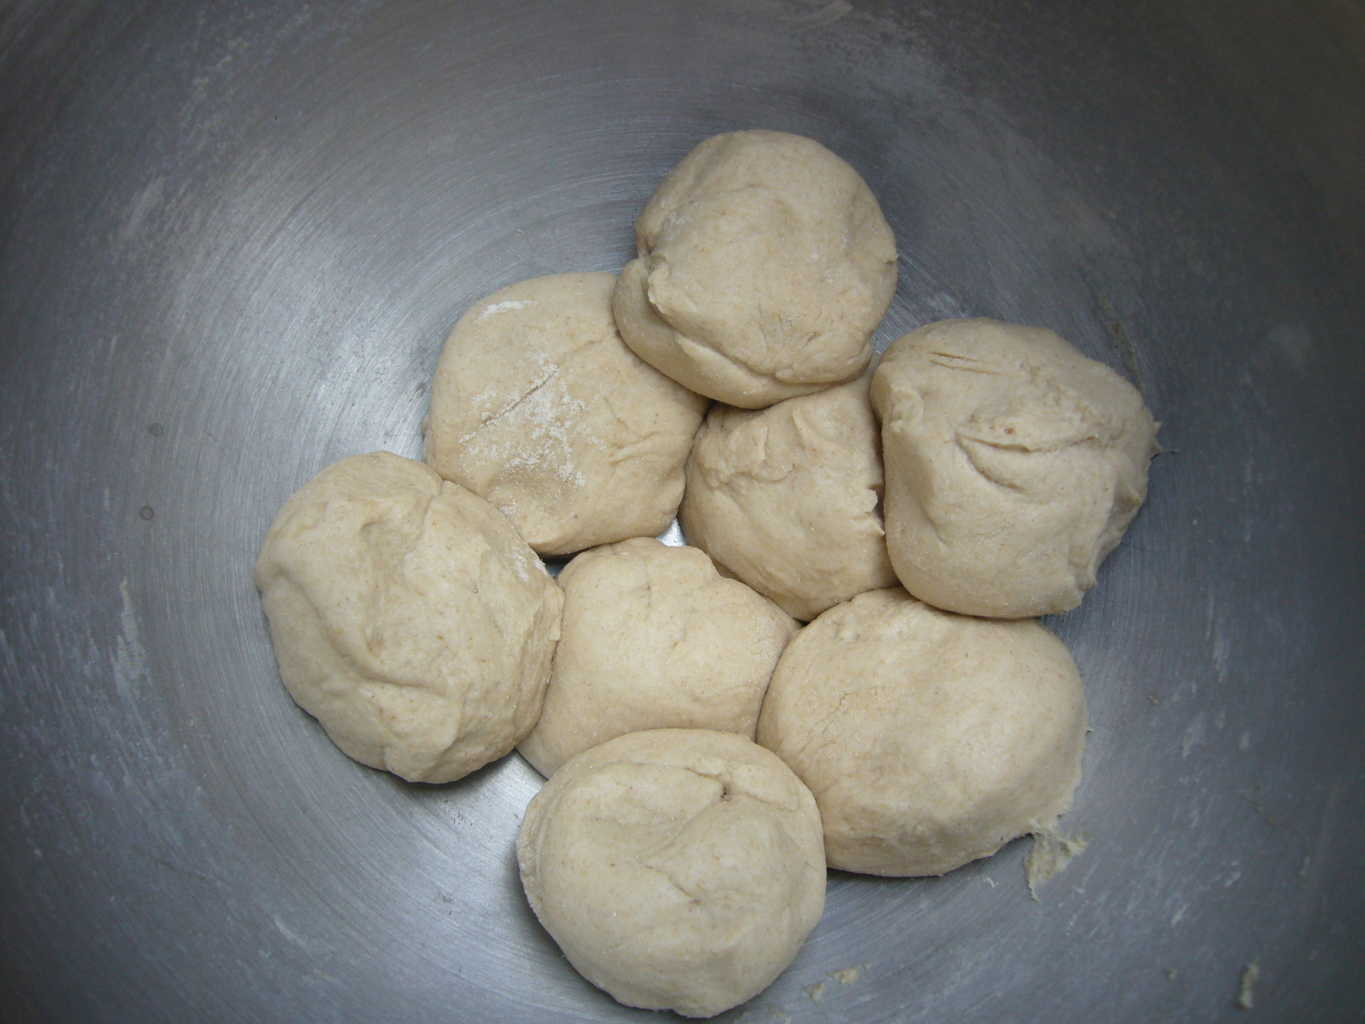 The dough is divided into portions to make the paratha.